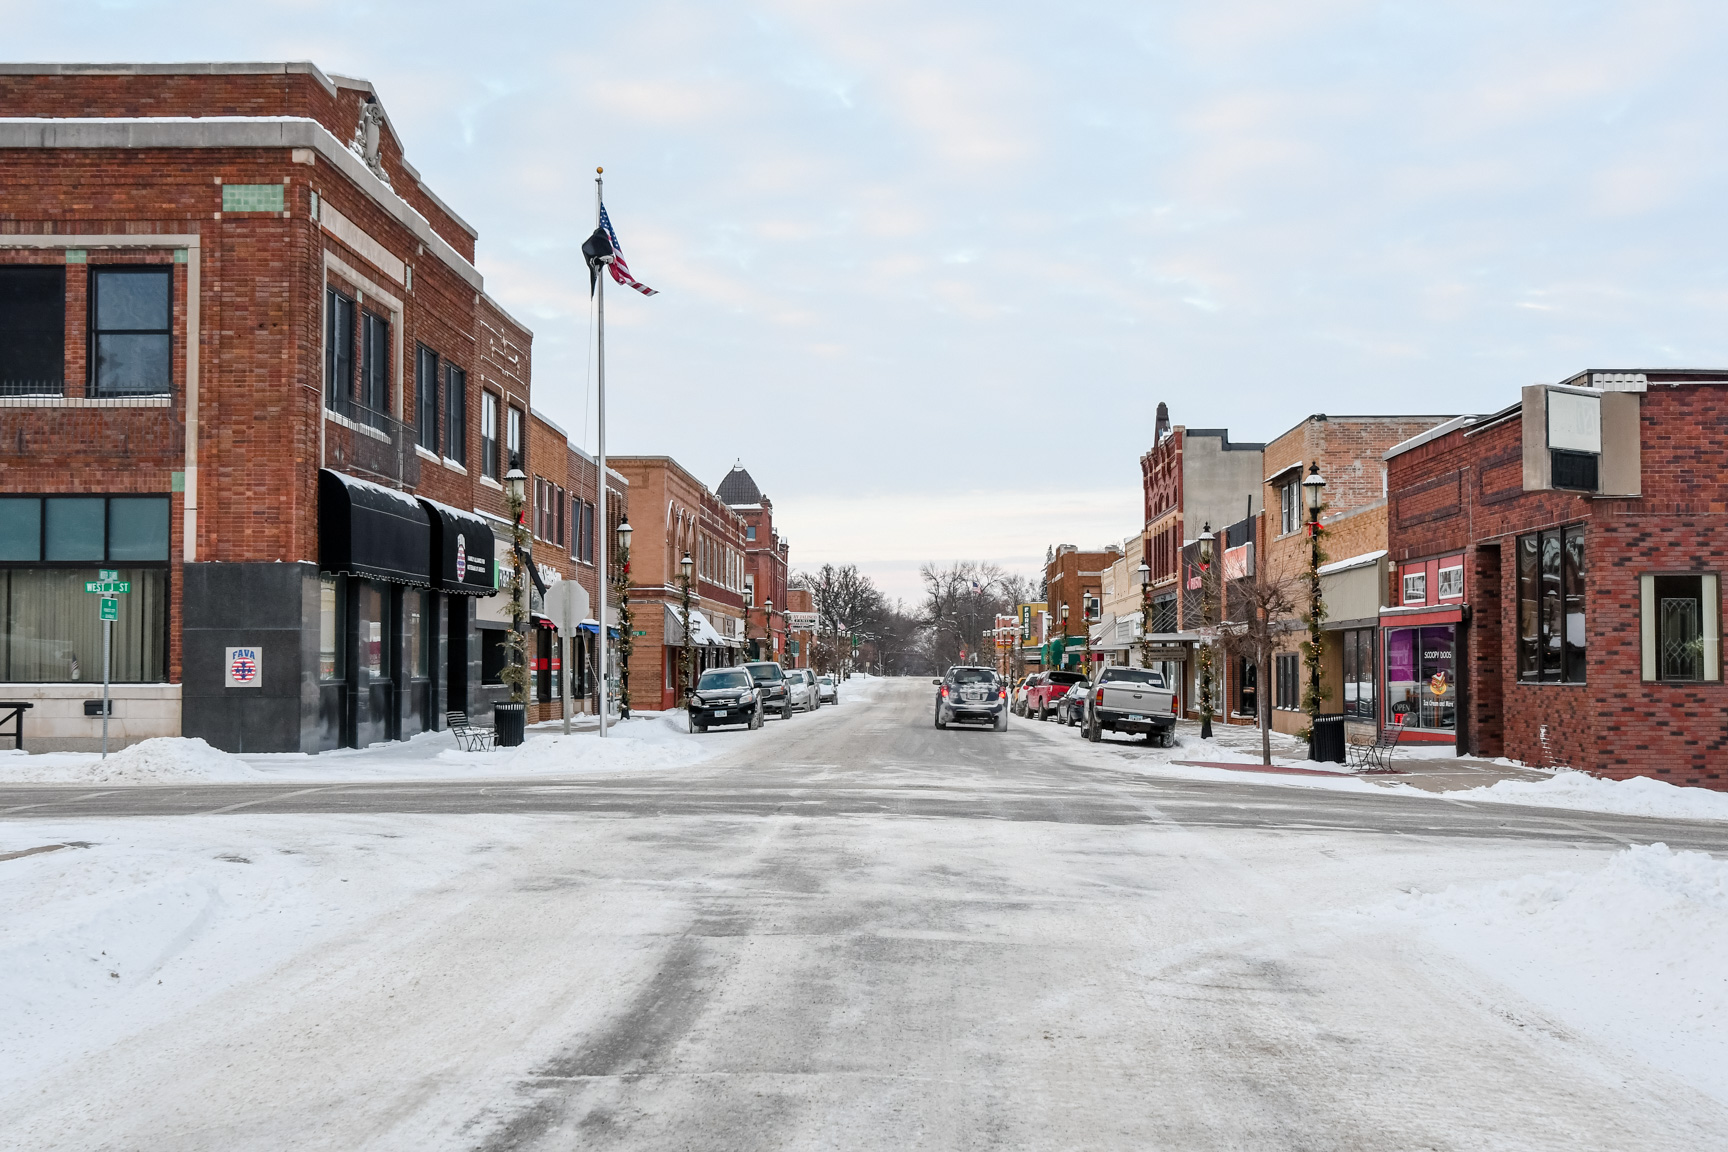 Main Street in Forest City at the end of 2017. Many in the small town situated close to the Minnesota border are uneasy about the city's future. (Photo: Joseph L. Murphy)